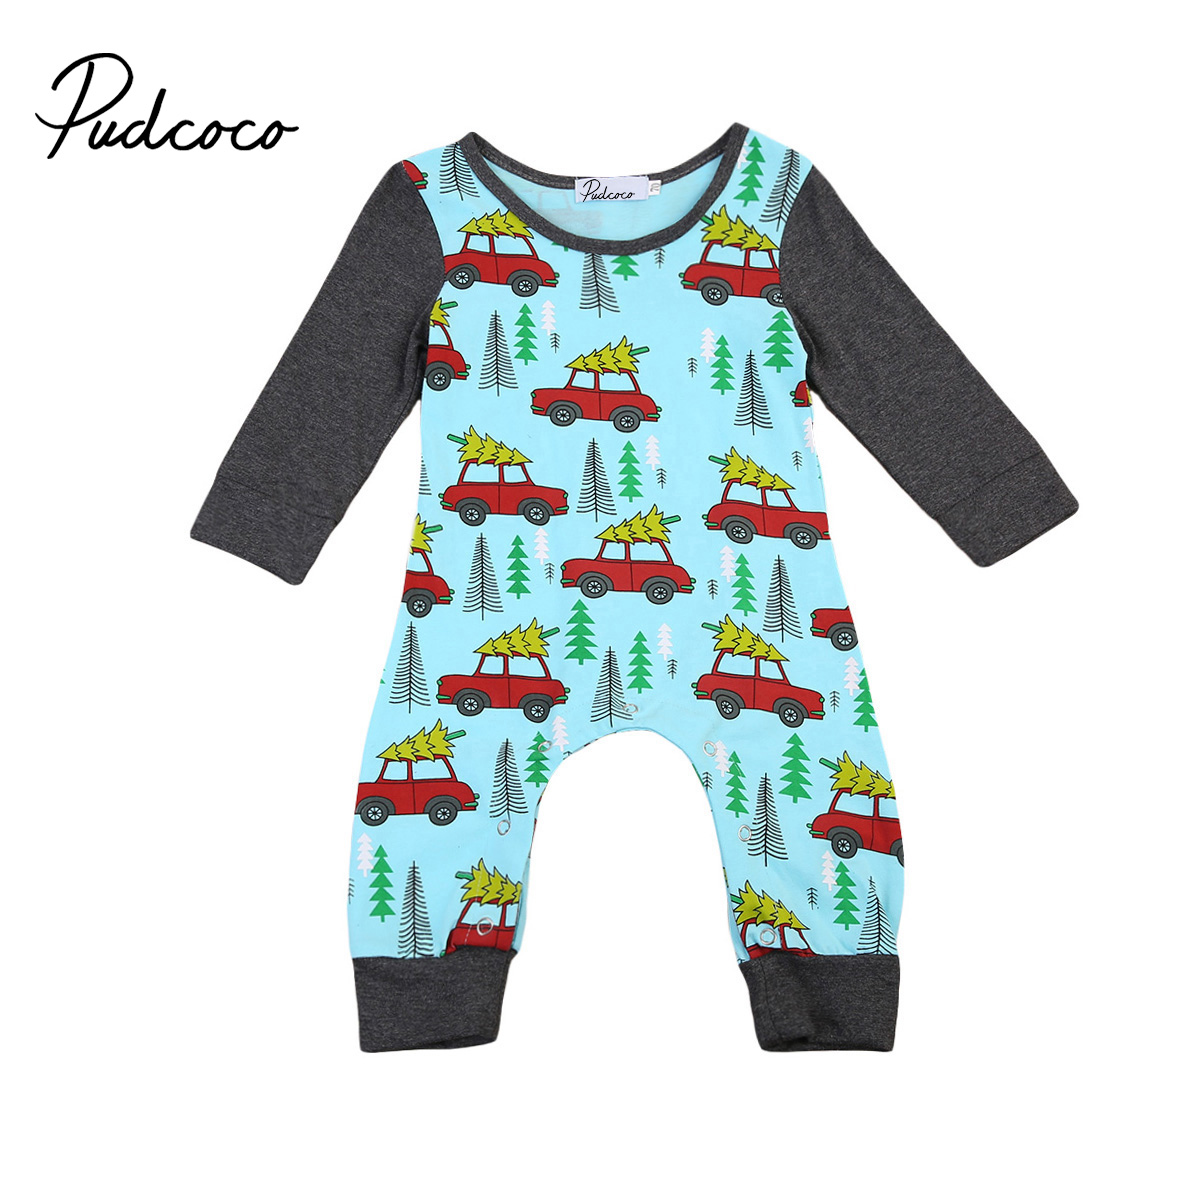 Pudcoco Newborn Infant Baby Boys Girls Clothing Xmas Cars Printed Long Sleeve Romper Jumpsuit Fall Cotton One-Piece Outfit newborn infant baby girls boys long sleeve clothing 3d ear romper cotton jumpsuit playsuit bunny outfits one piecer clothes kid